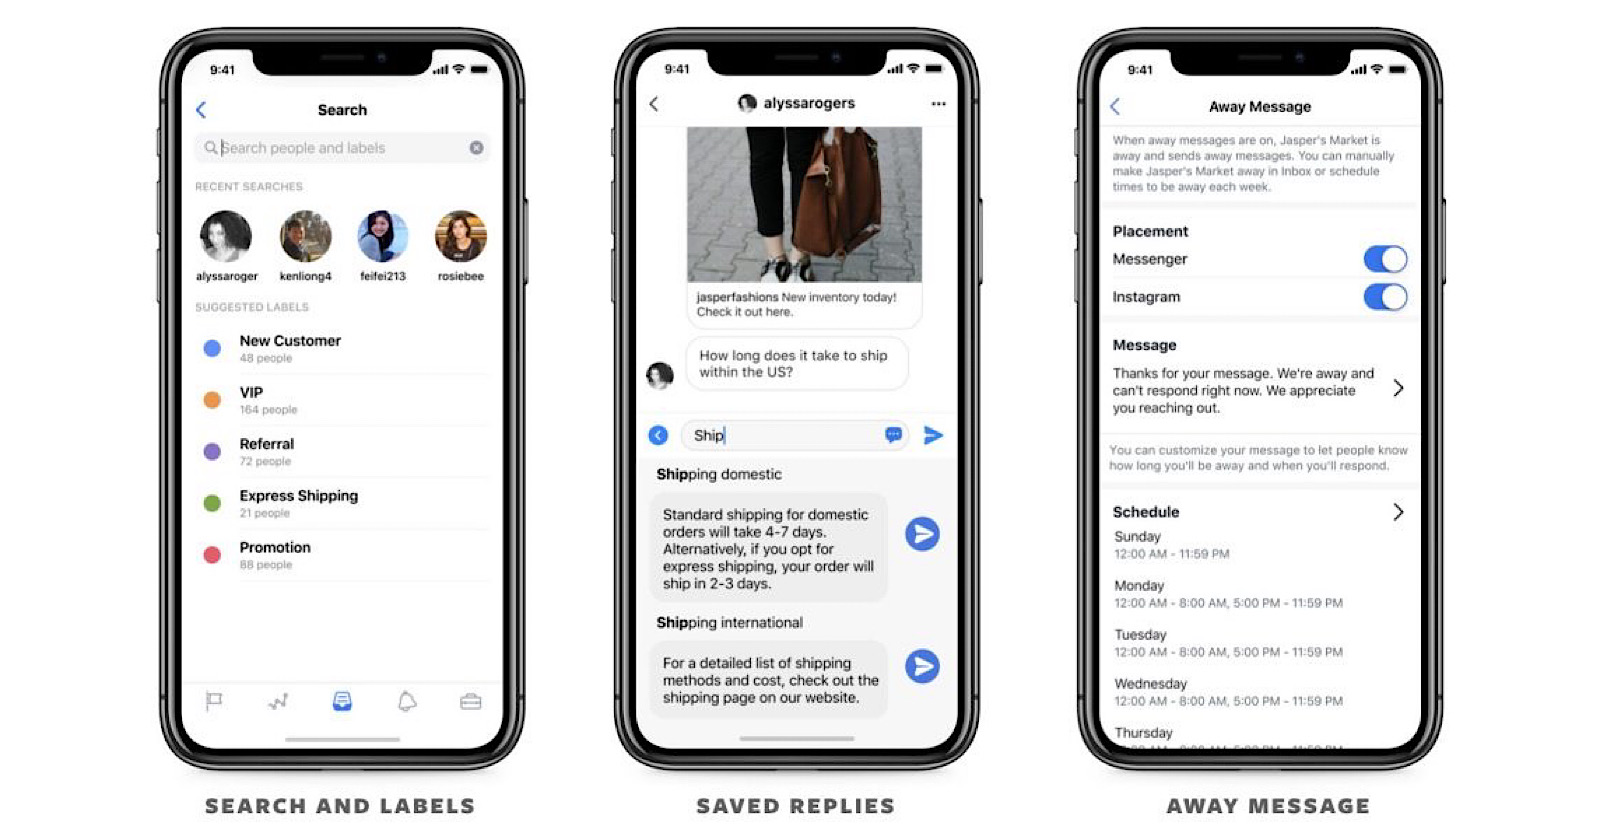 facebook-launches-new-tools-to-help-with-holiday-marketing-via-@mattgsouthern